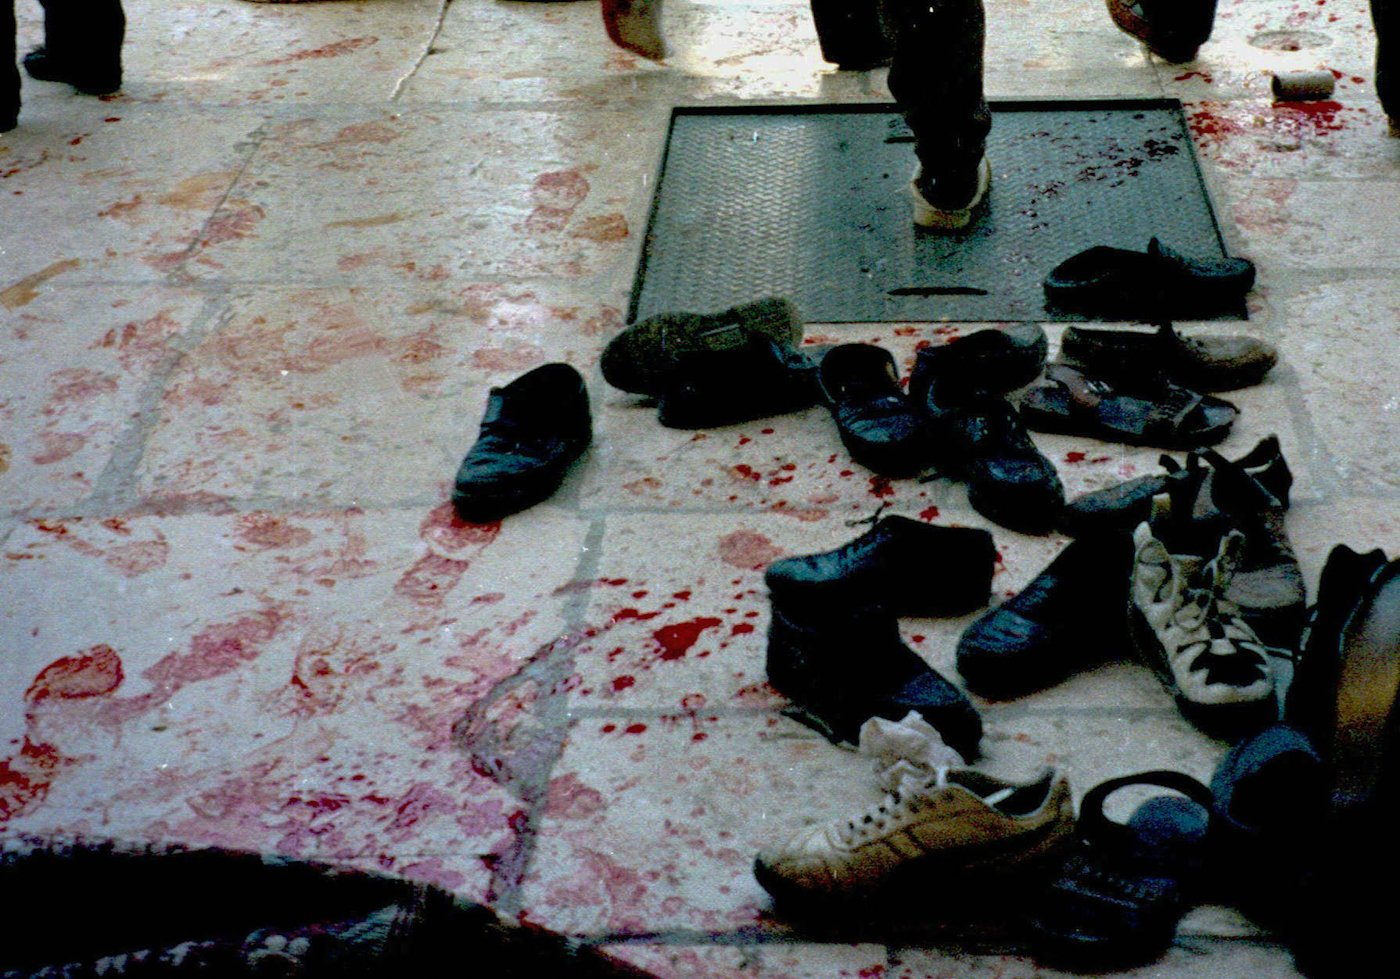 Blood-stained footmarks mark the entrance to Al Aqsa Mosque after Israeli police opened fire on Palestinian worshipers in 1996. Khaled Zighari | AP